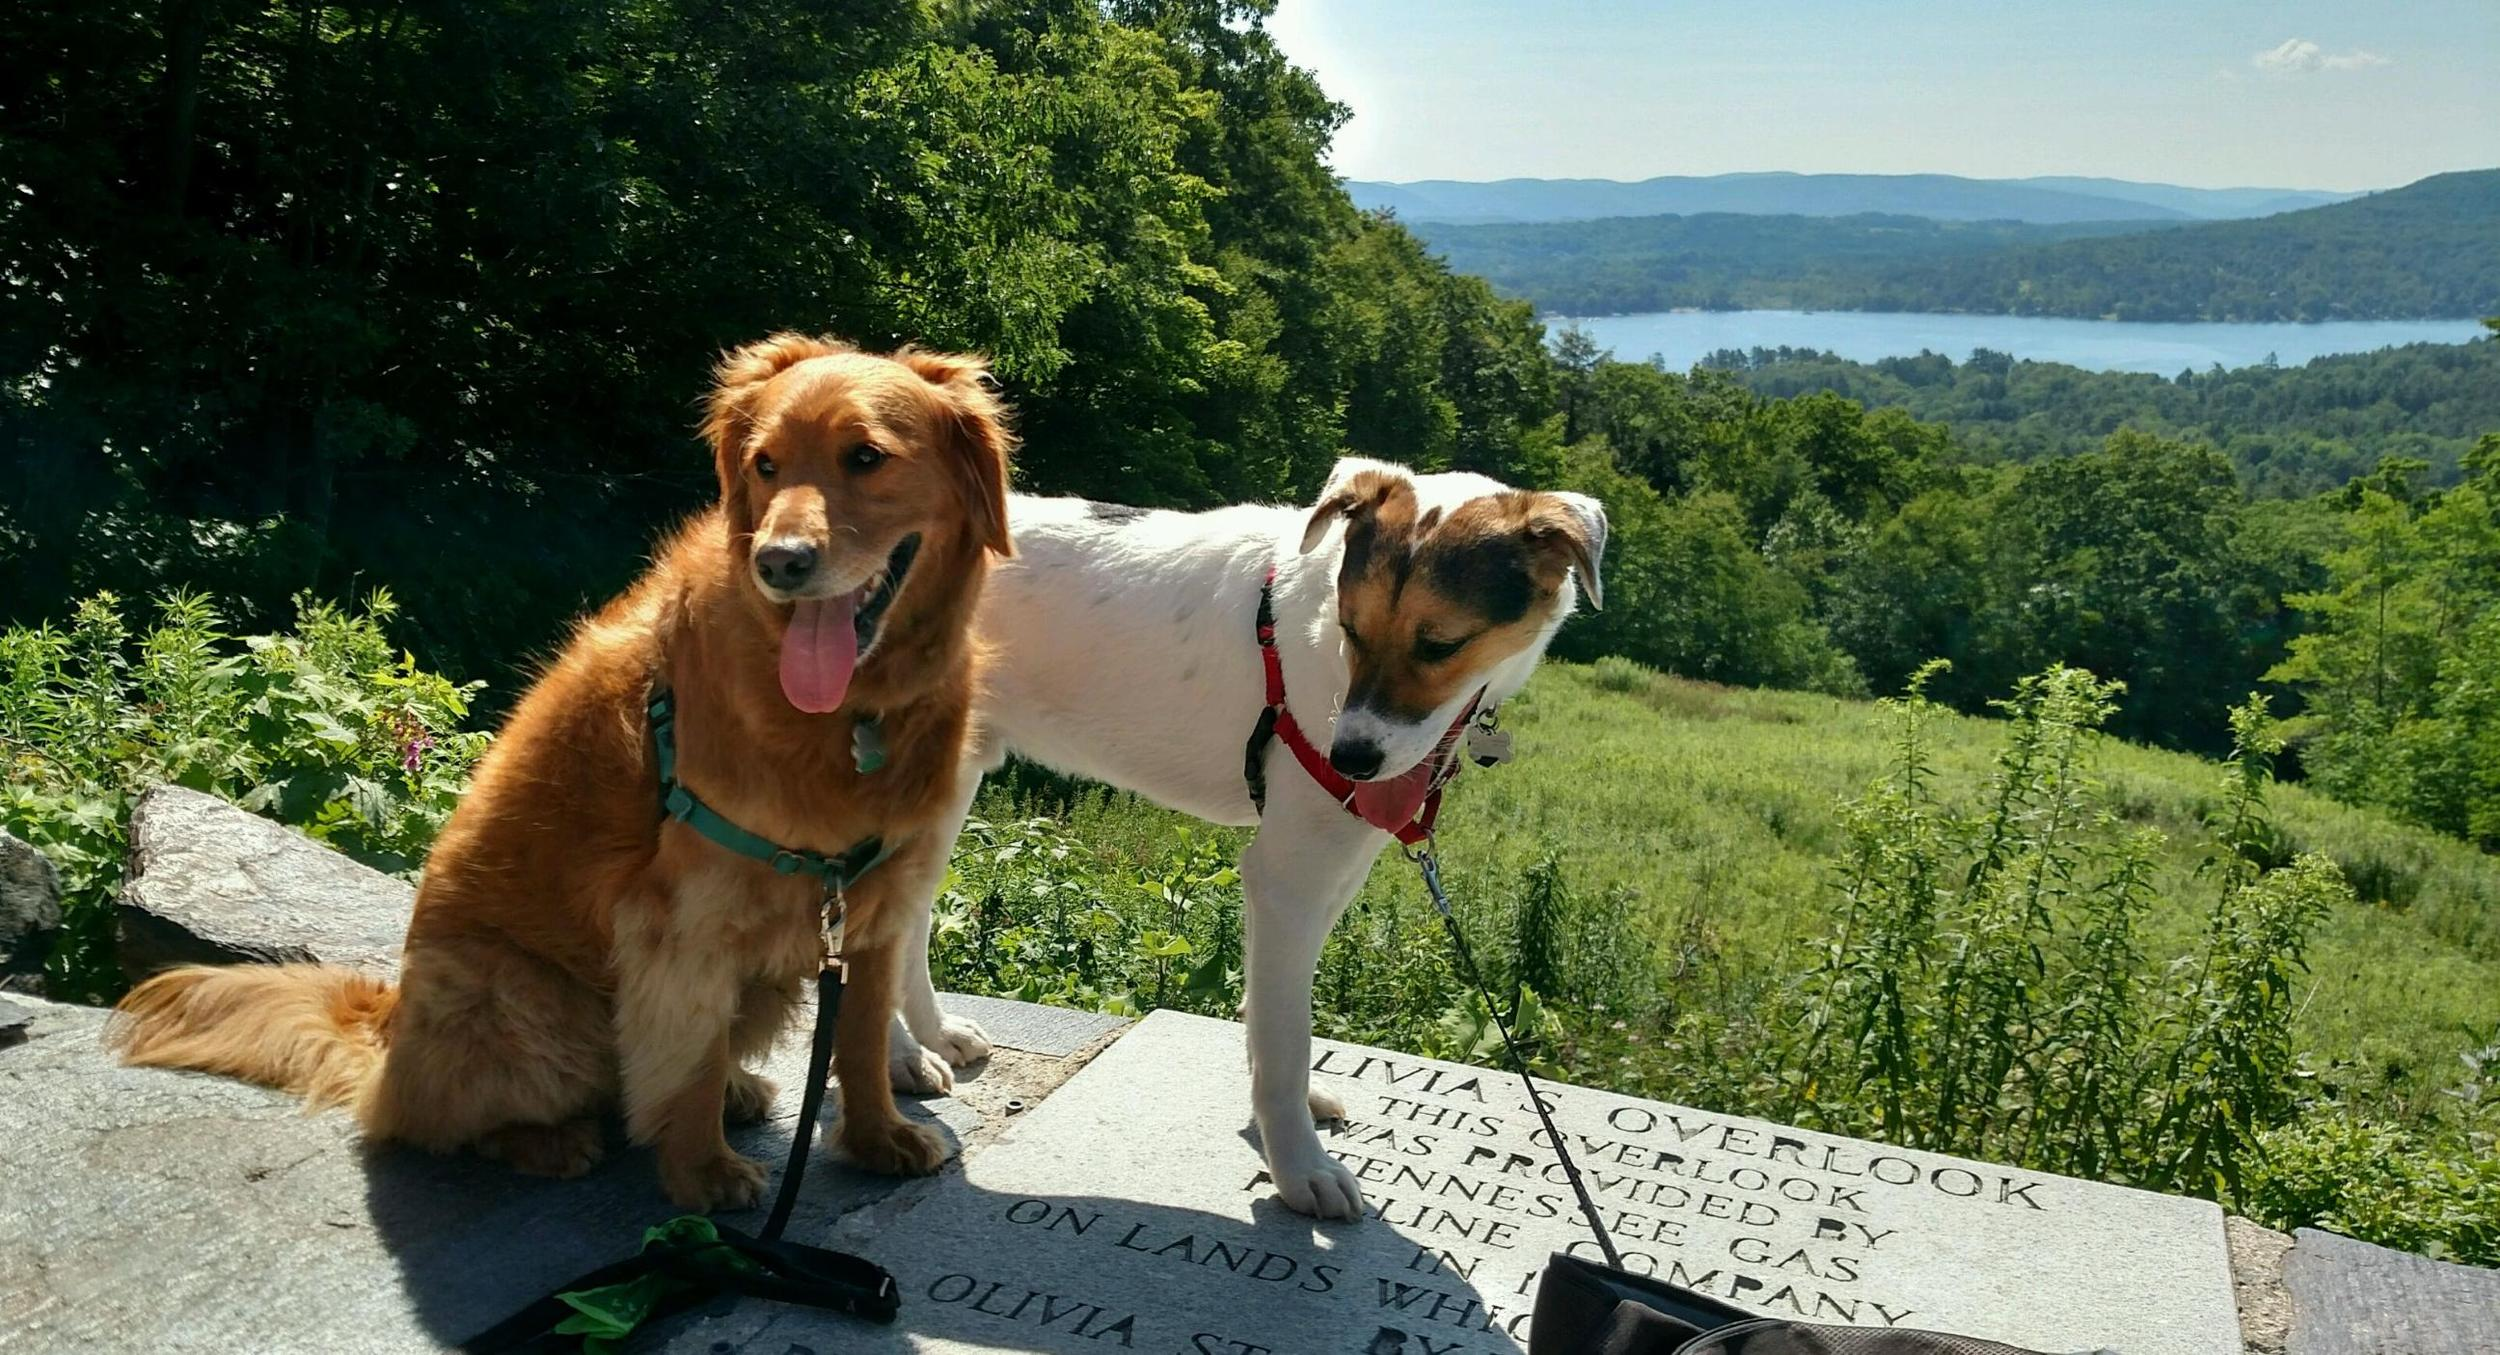 Elsie and her friend Sniff after a play date at Olivia's Overlook.